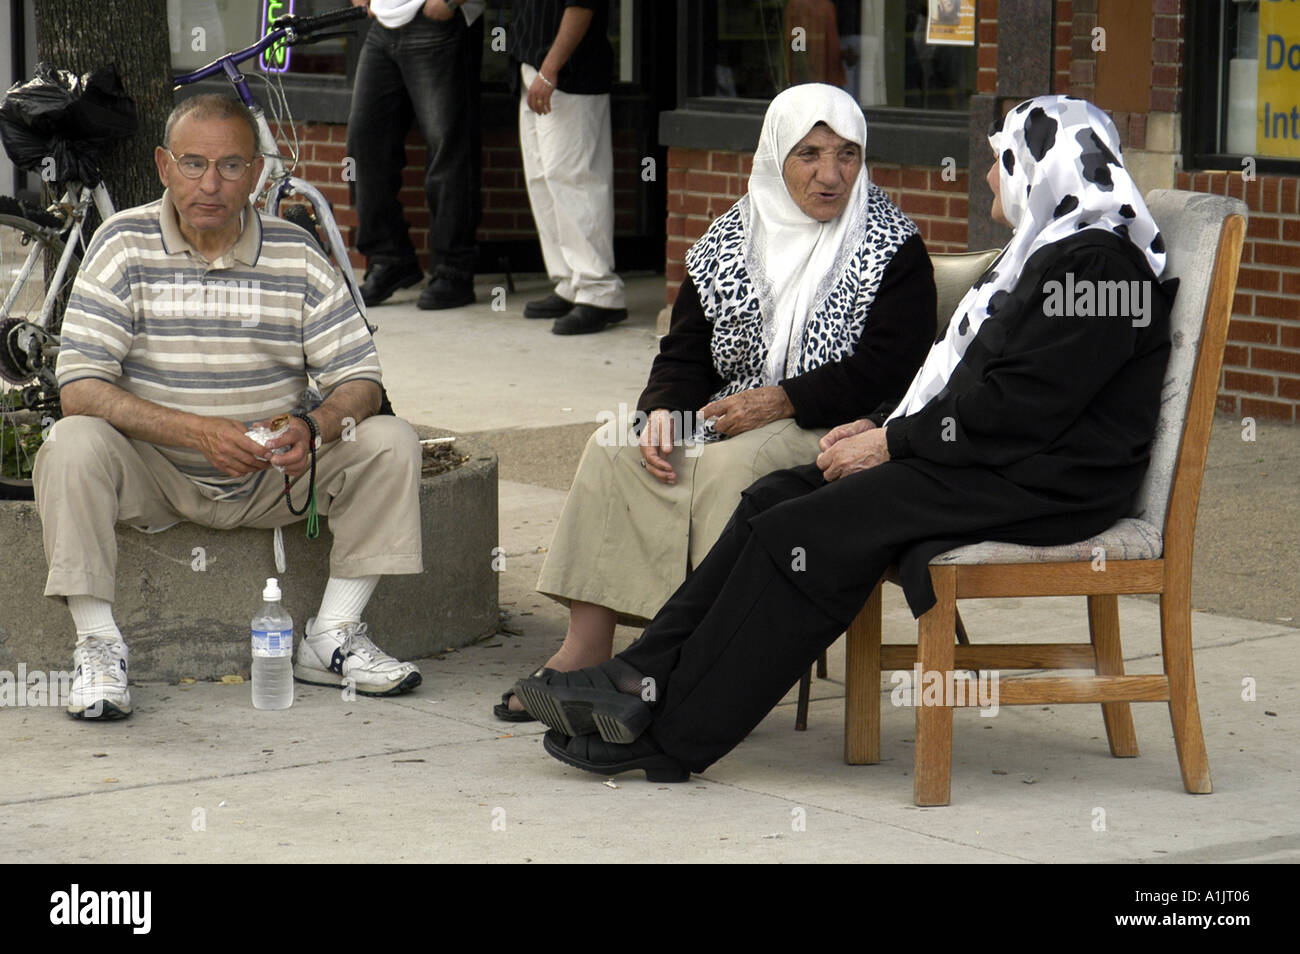 Two Older Women Wearing Hijabs Talk On Sidewalk Arab International Festival 2004 Dearborn Michigan USA the city Stock Photo